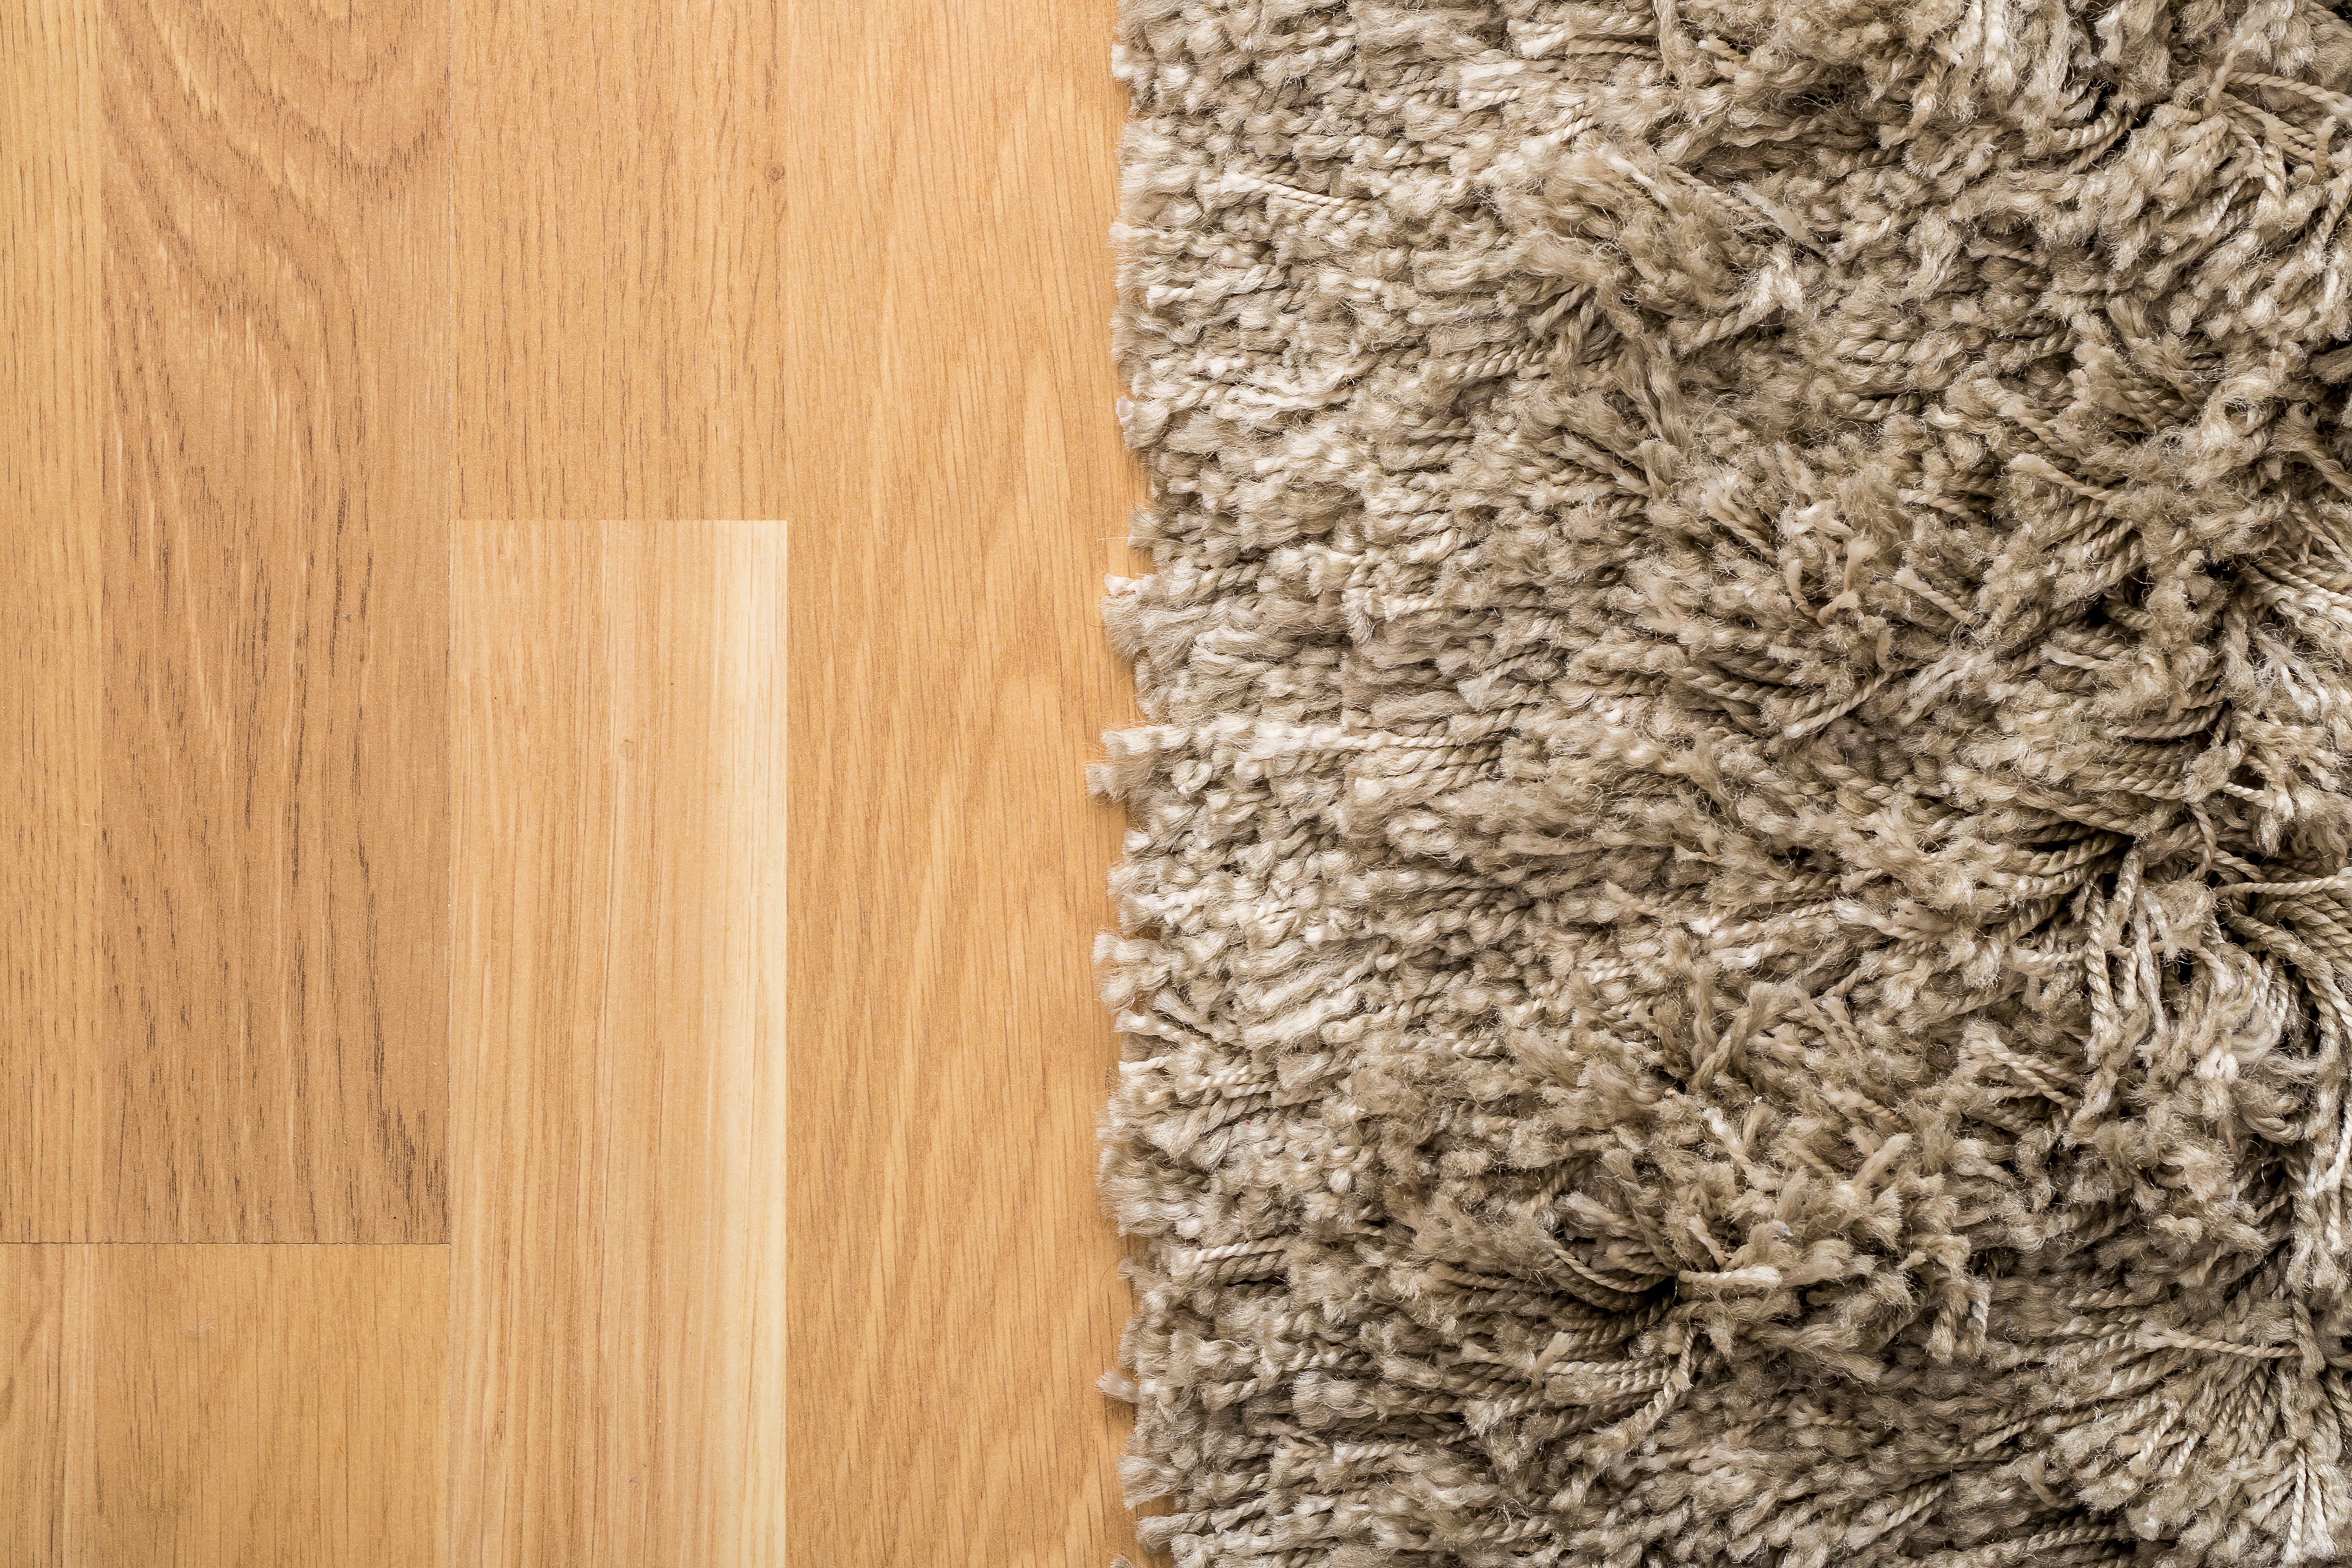 Area Rug Cleaning services in Athens